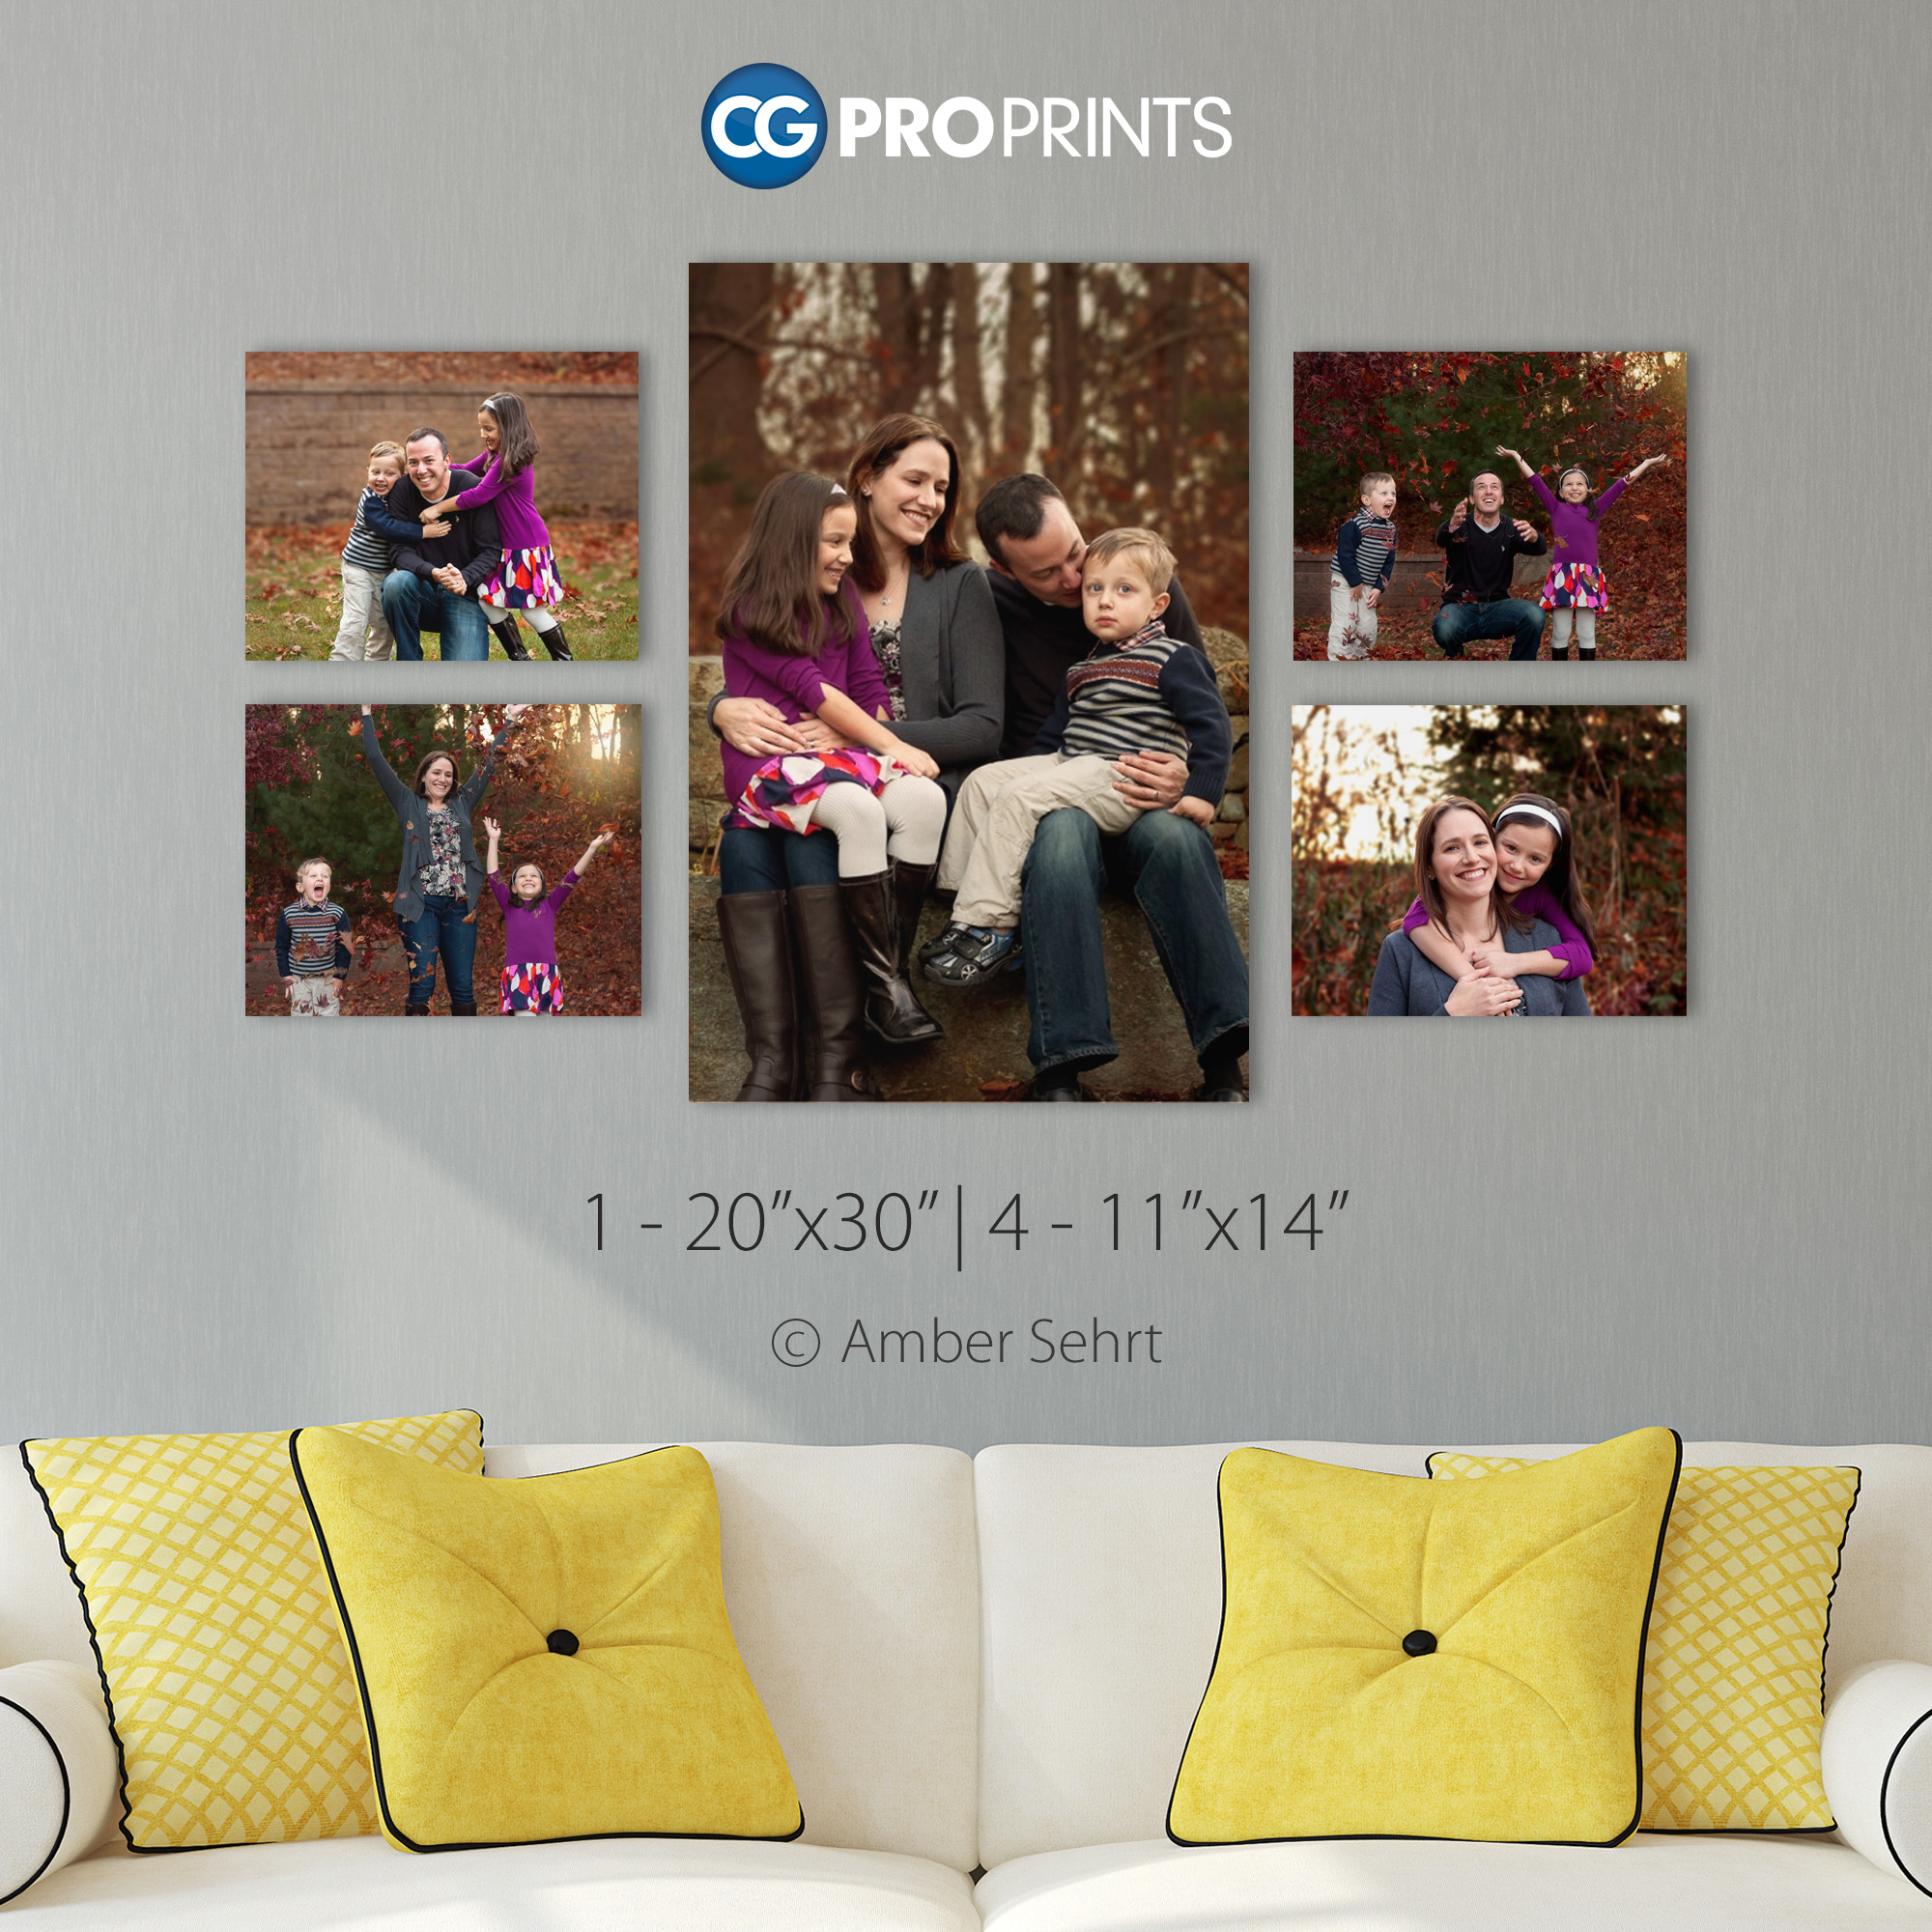 2.4.16_CGProPrints_EscherGrouping